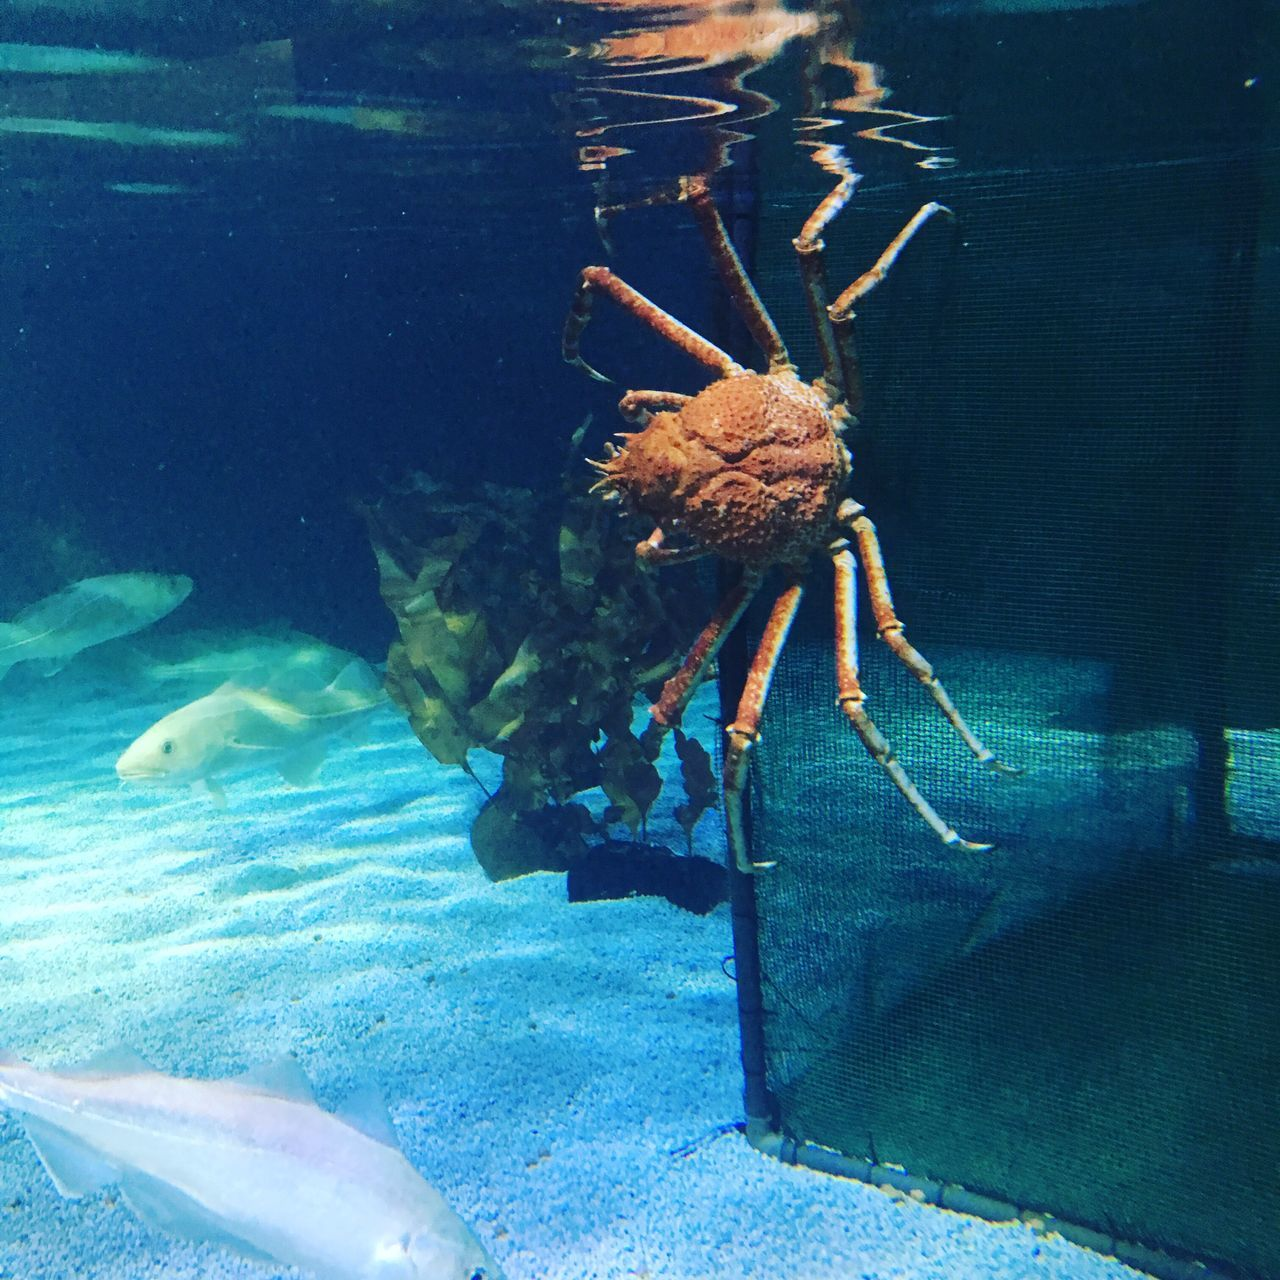 sea life, animal themes, underwater, animals in the wild, no people, nature, water, undersea, one animal, animal wildlife, swimming, aquarium, sea, day, beauty in nature, outdoors, close-up